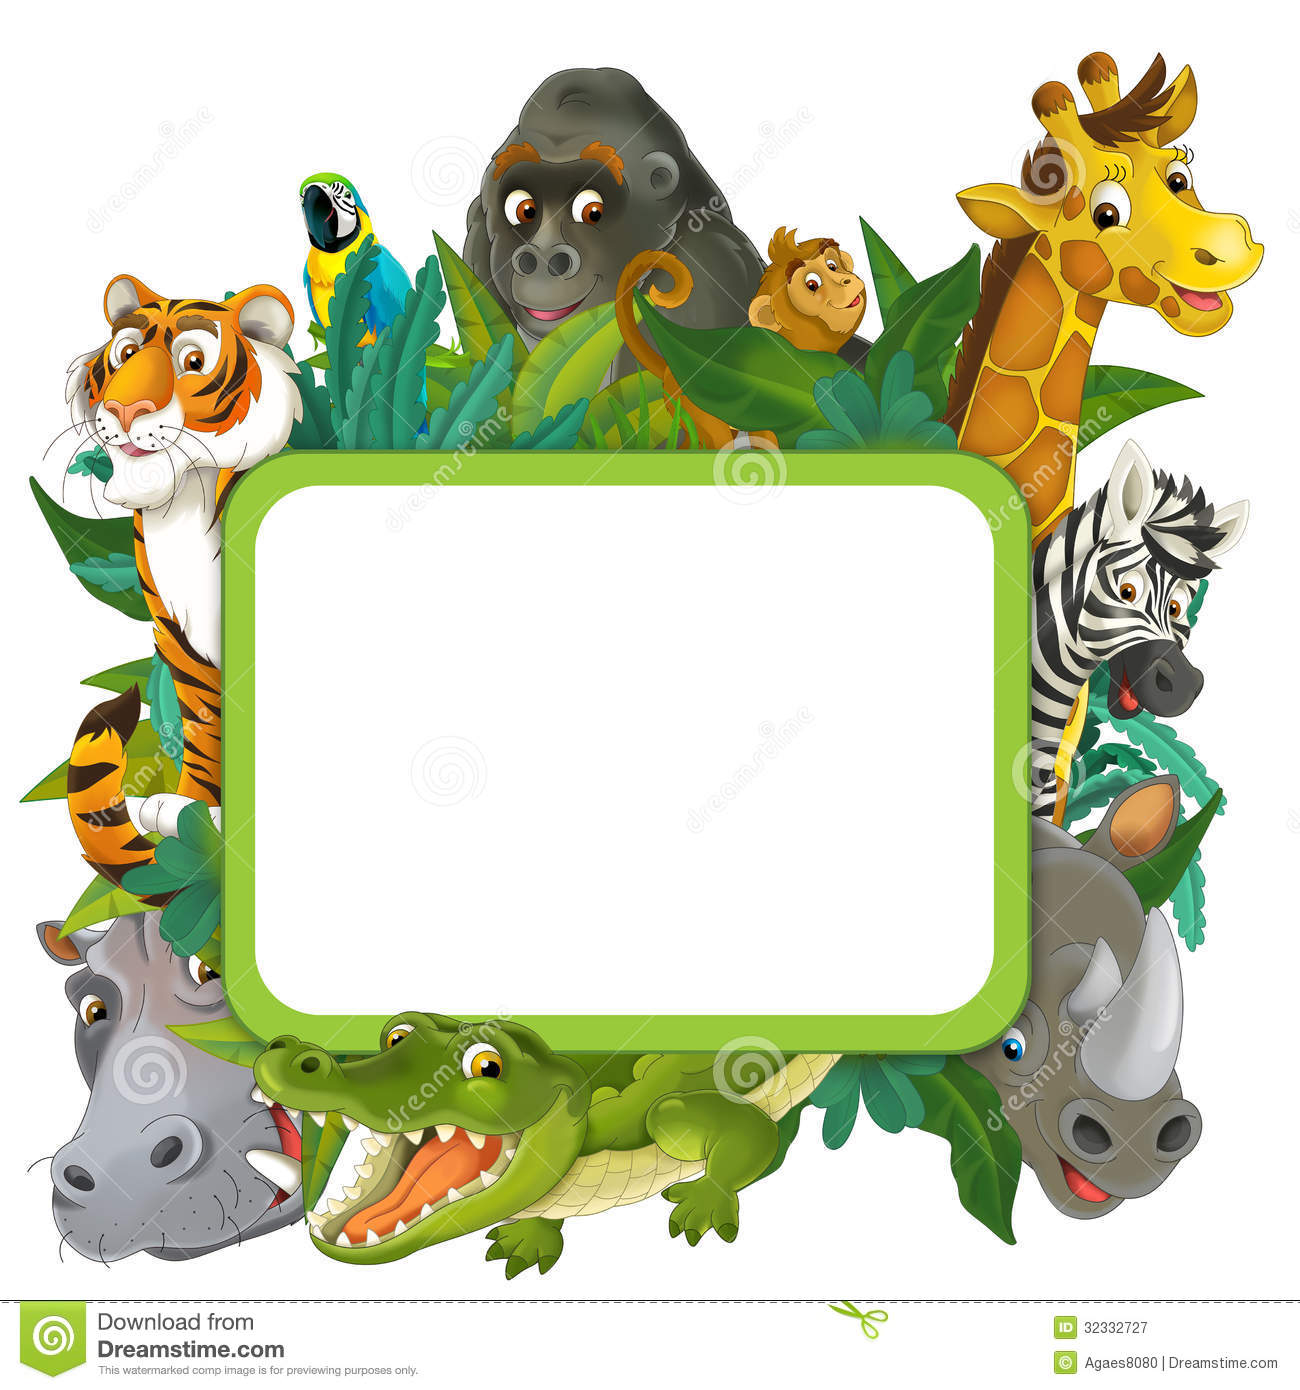 Themes clipart download.